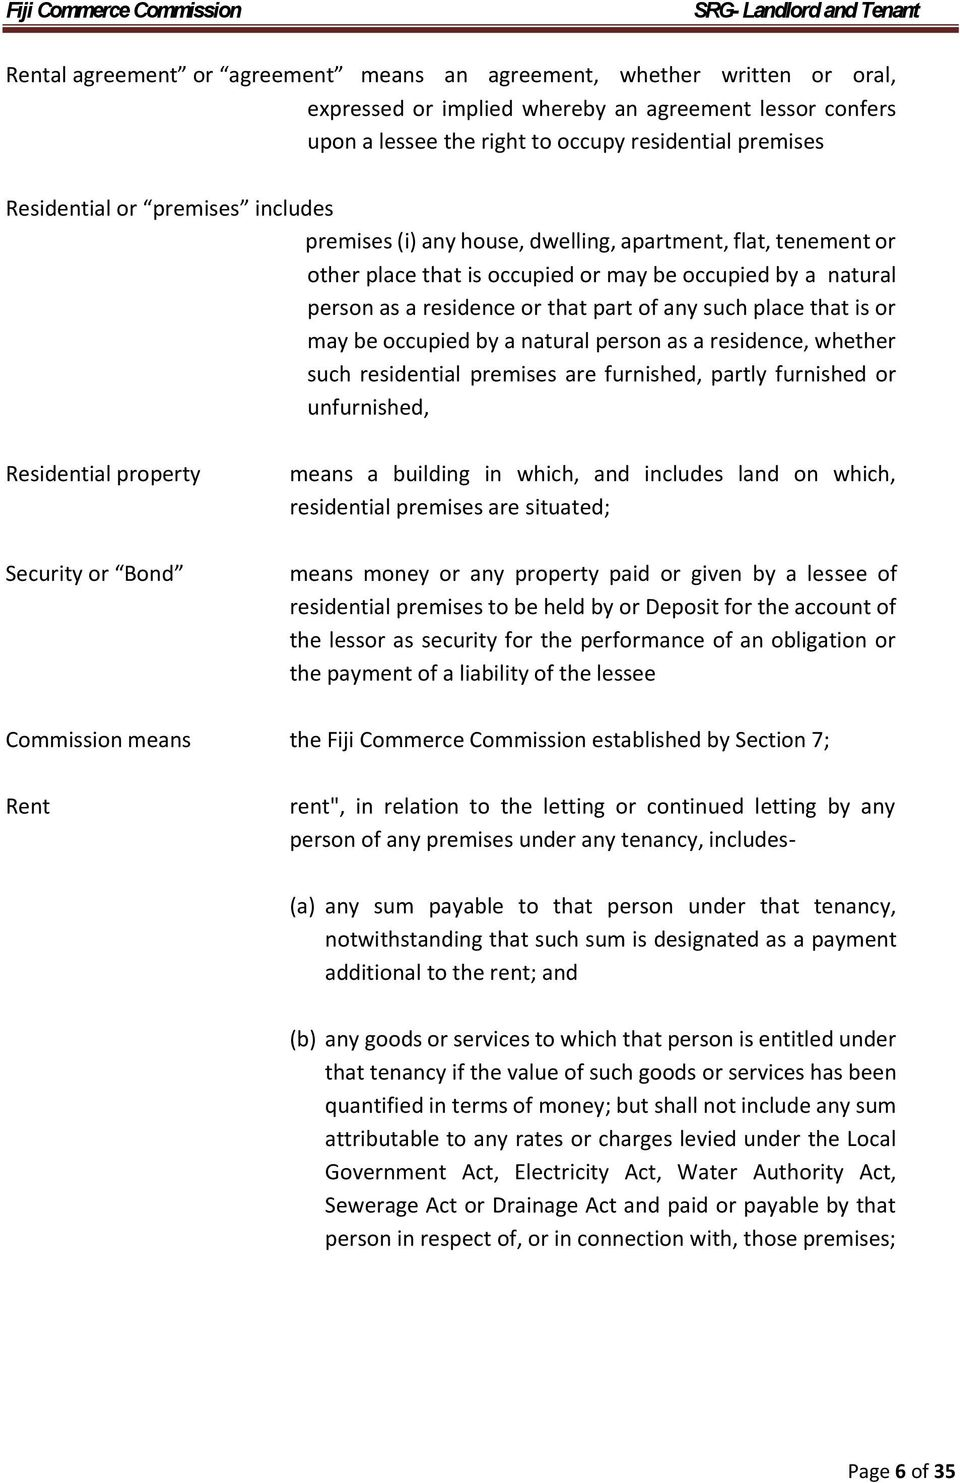 Self Regulating Guideline  for  Landlord and Tenant in Fiji - PDF